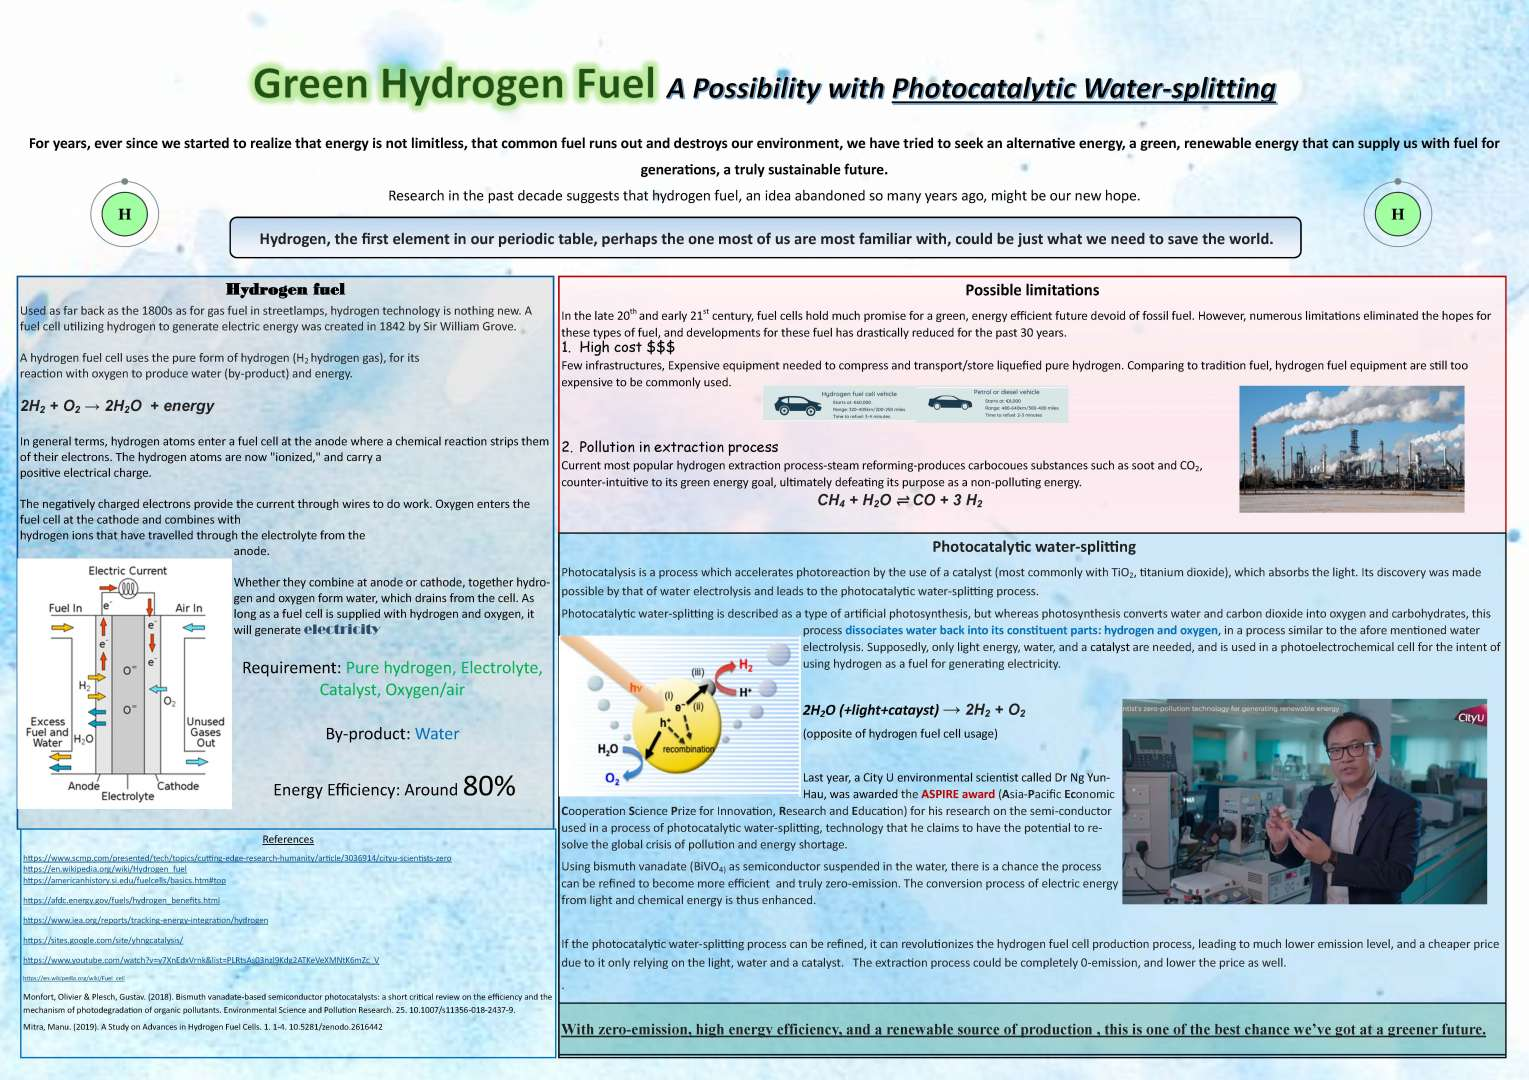 Green Hydrogen Fuel – A possibility with Photocatalytic Water-splitting